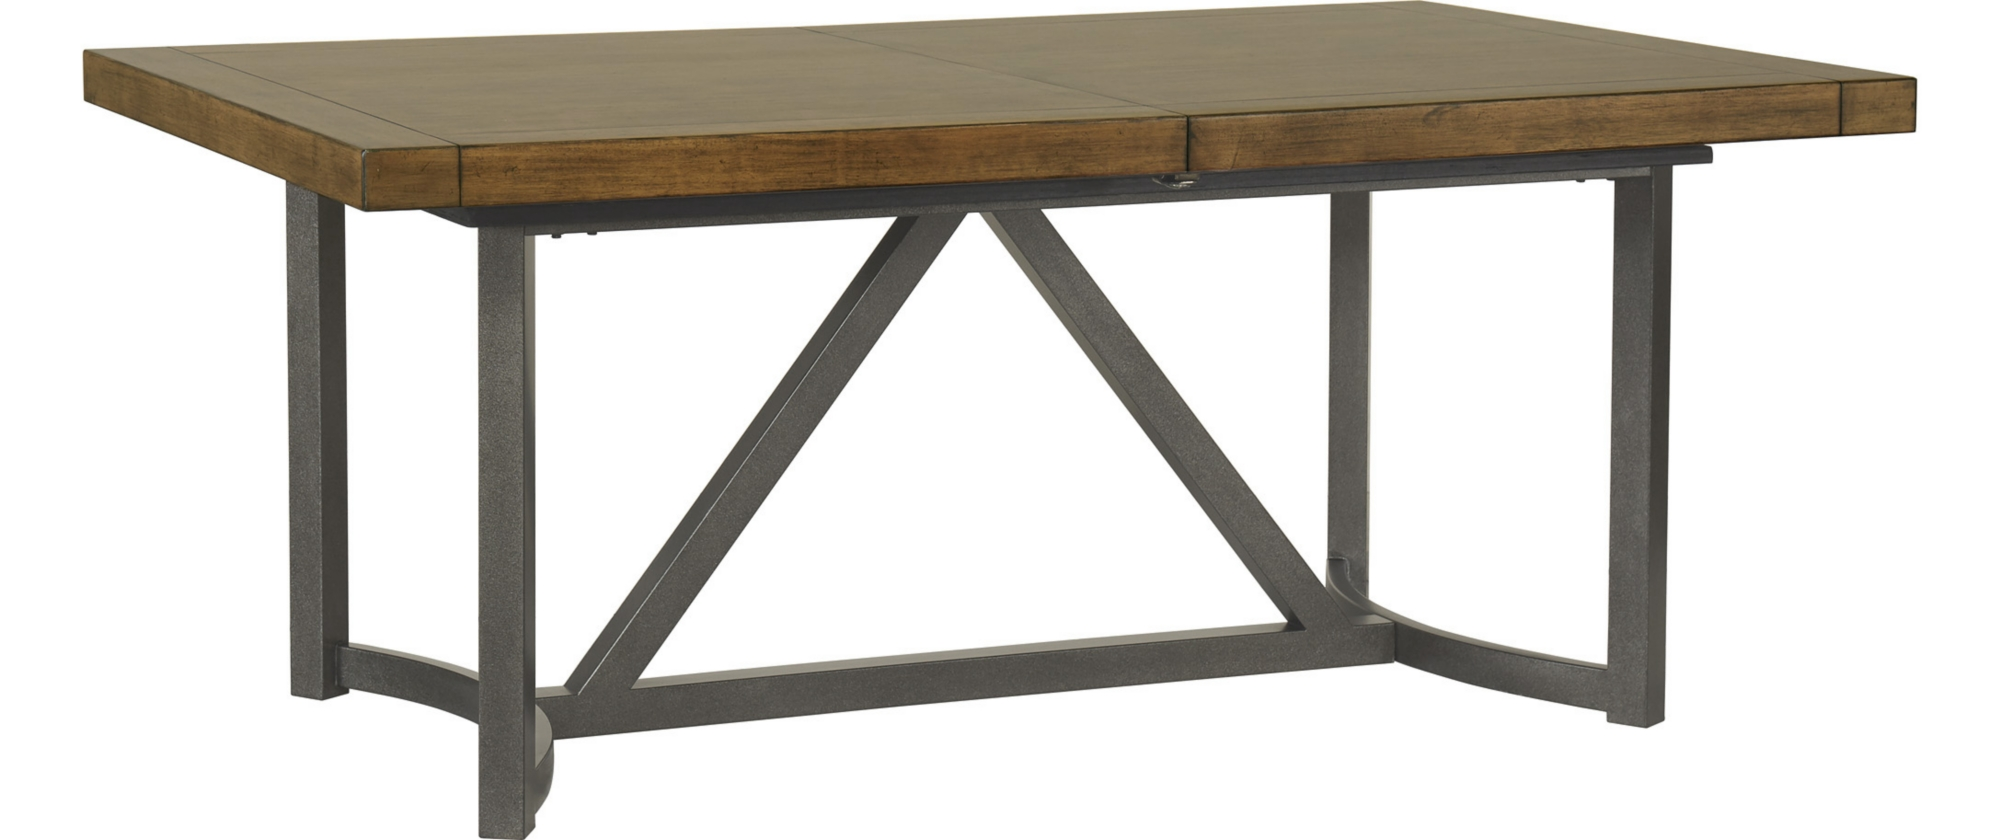 Printers Alley Trestle Table